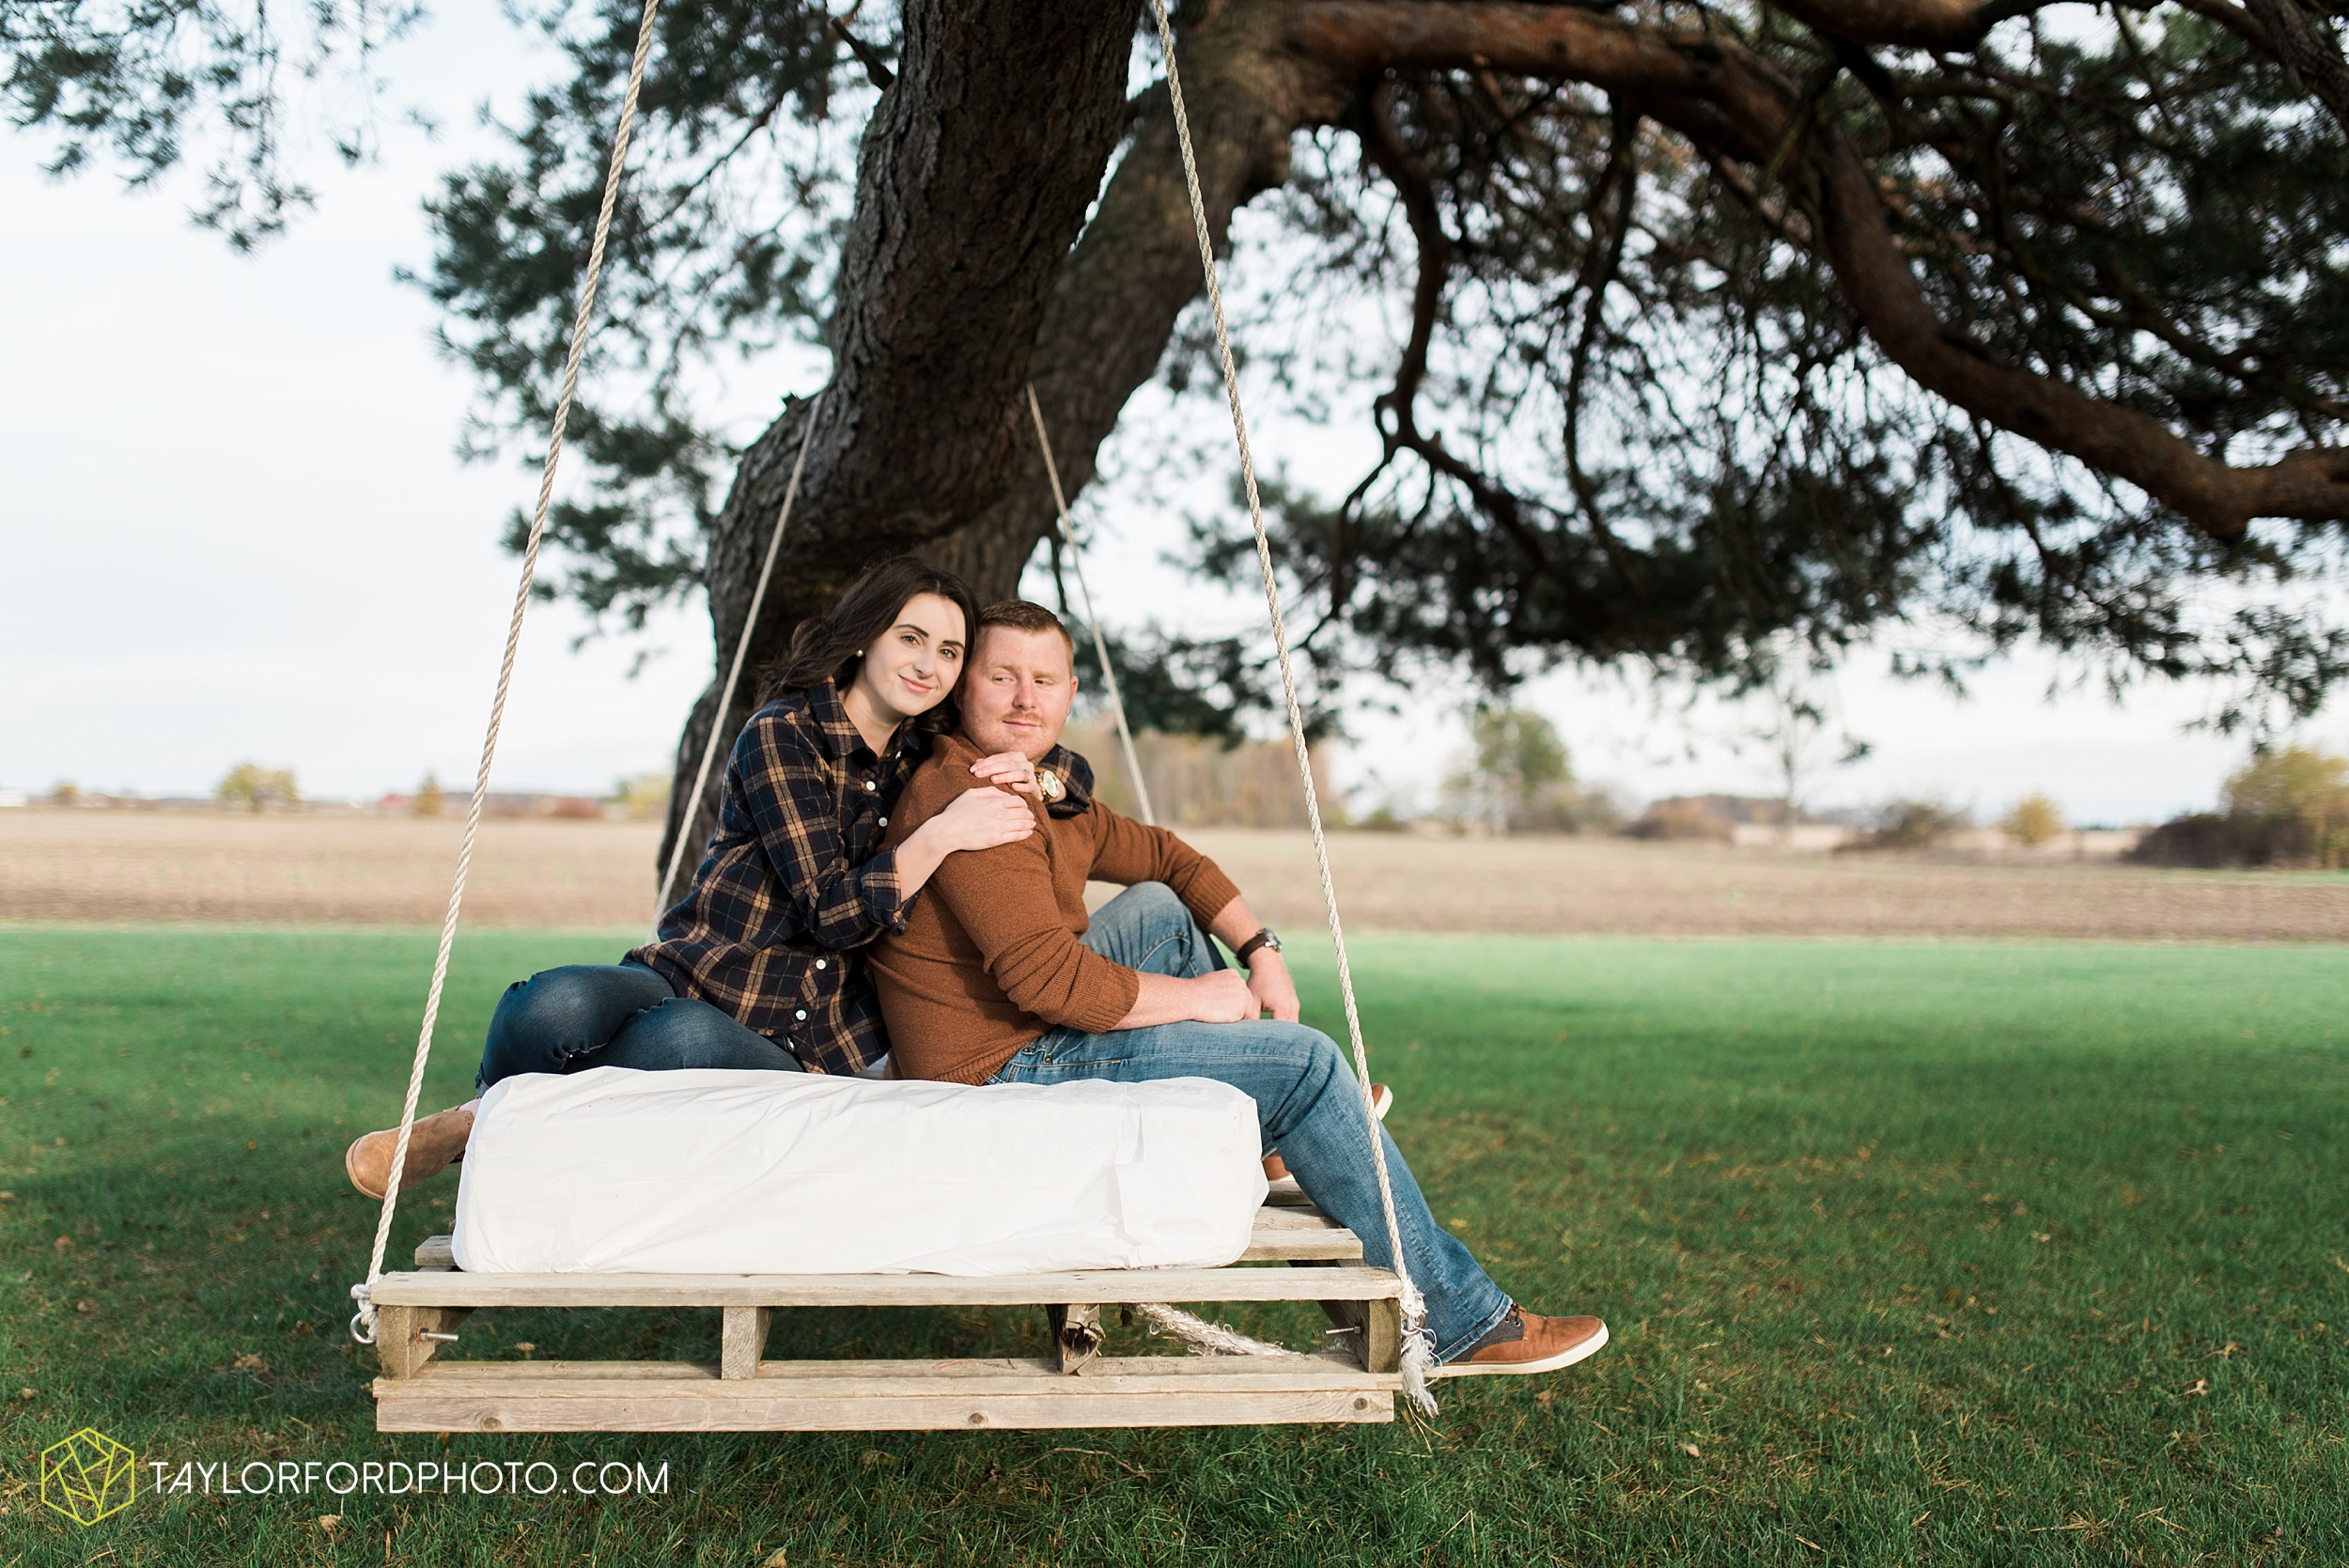 van-wert-ohio-engagement-photography-farm-life-photographer-Taylor-Ford-Photography_4526.jpg